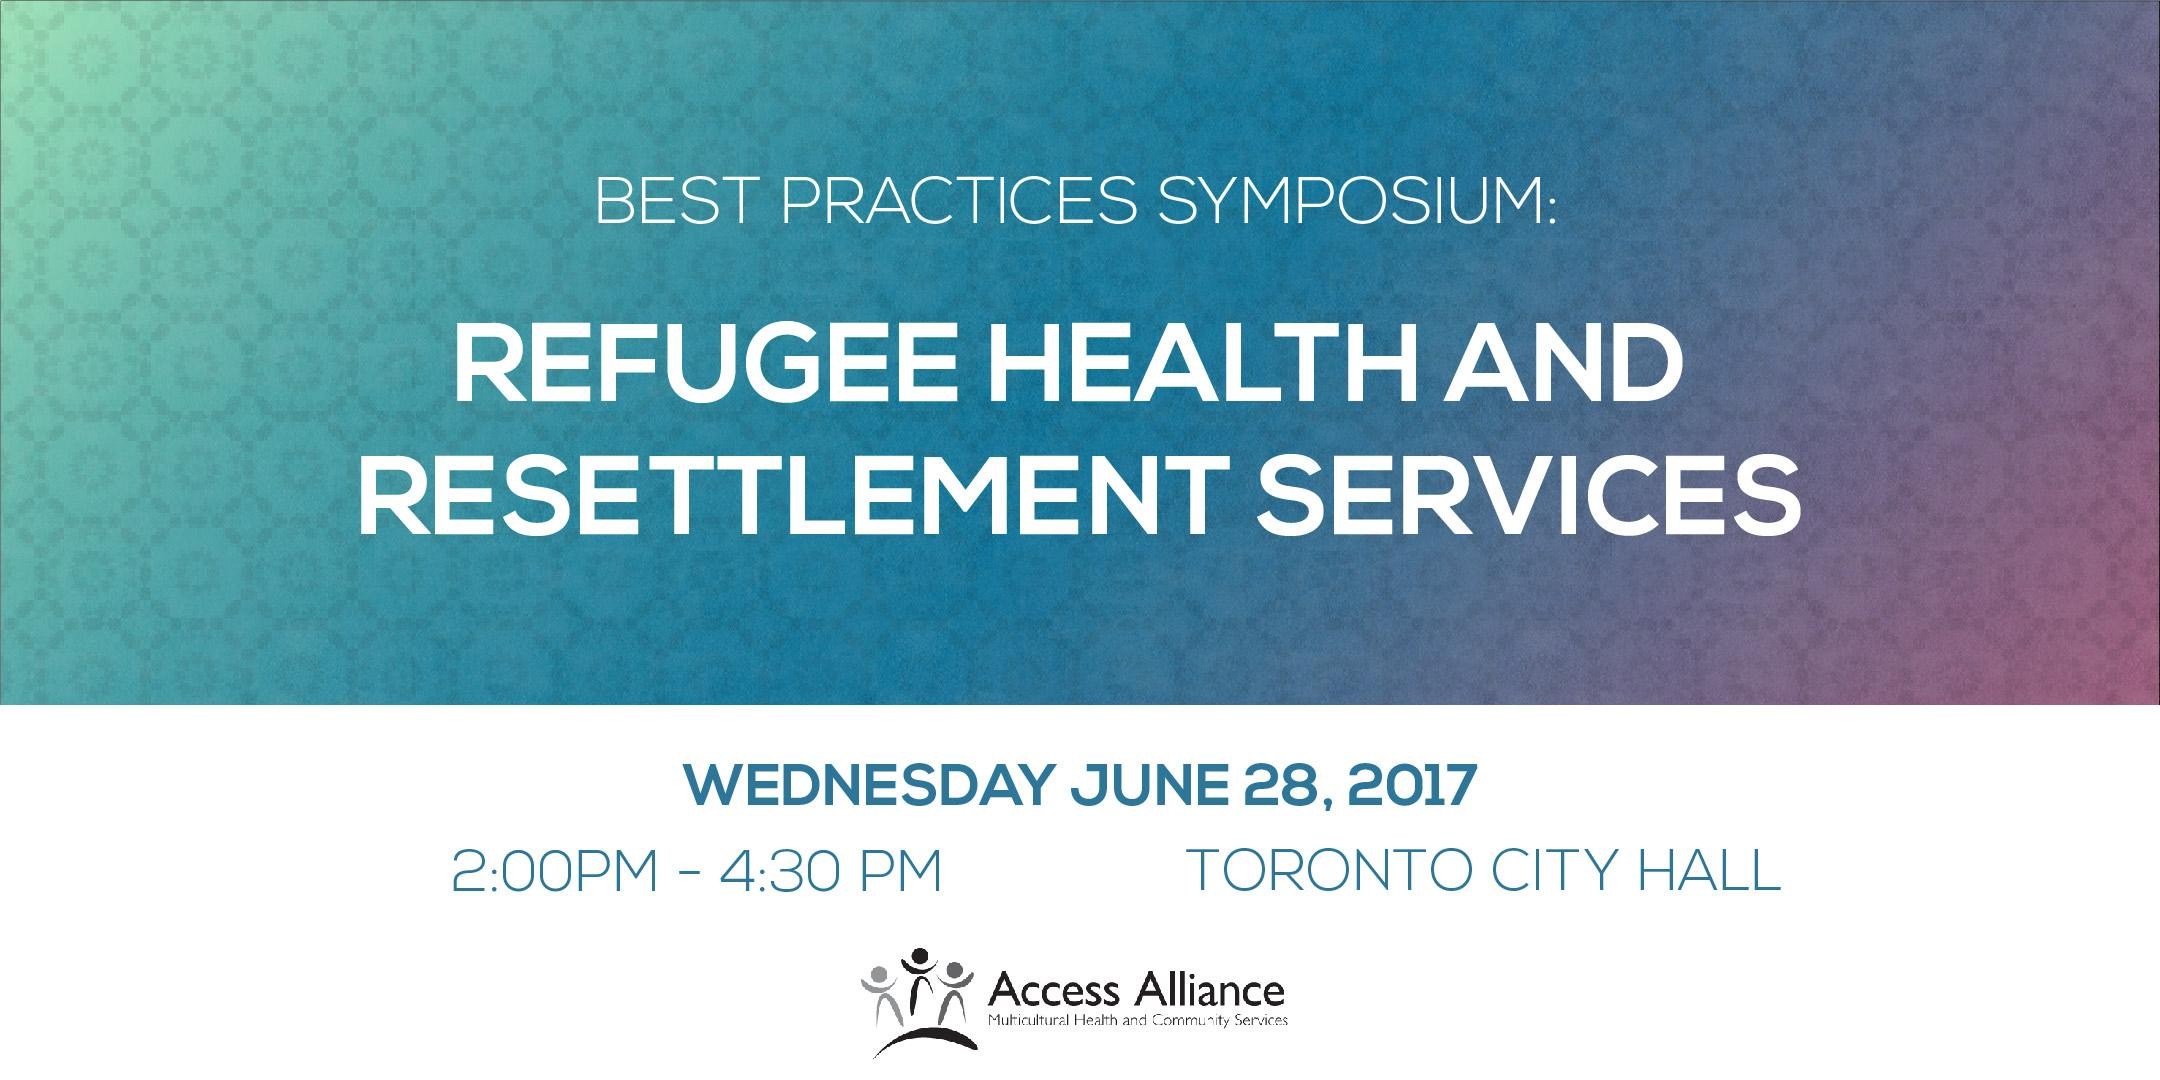 Best Practices Symposium: Refugee Health and